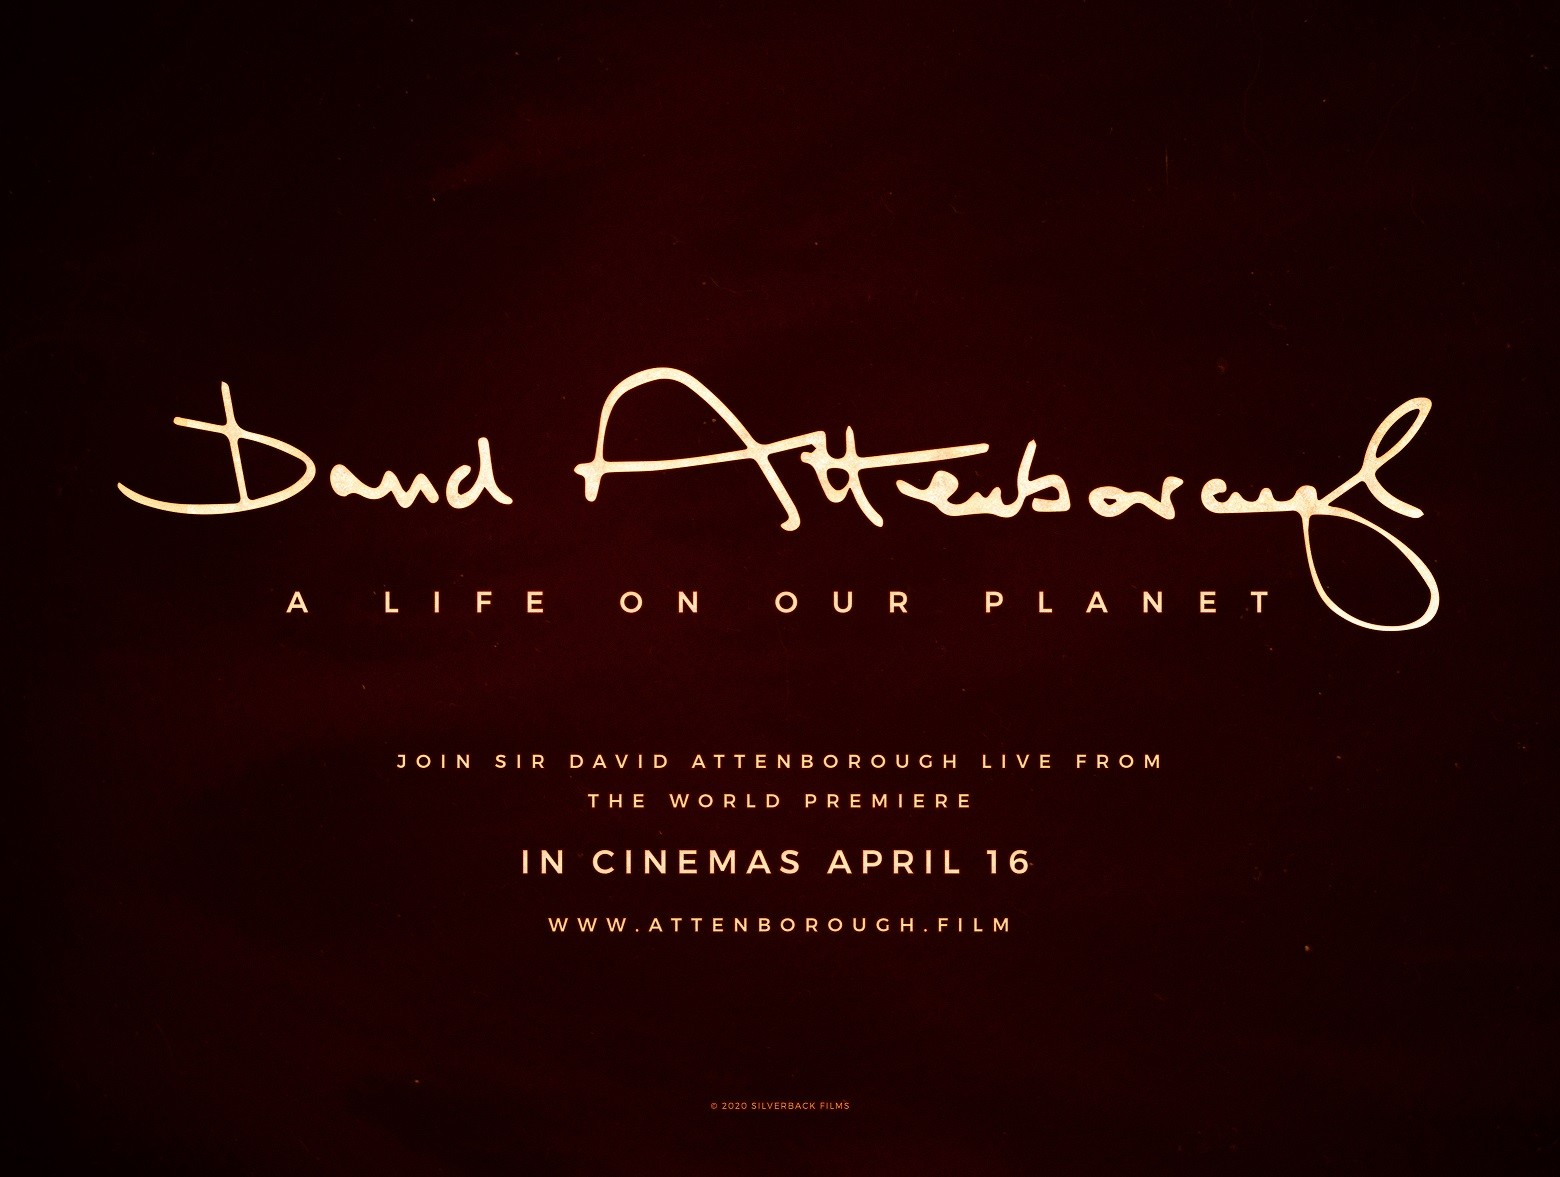 David Attenborough: A Life on Our Planet Live